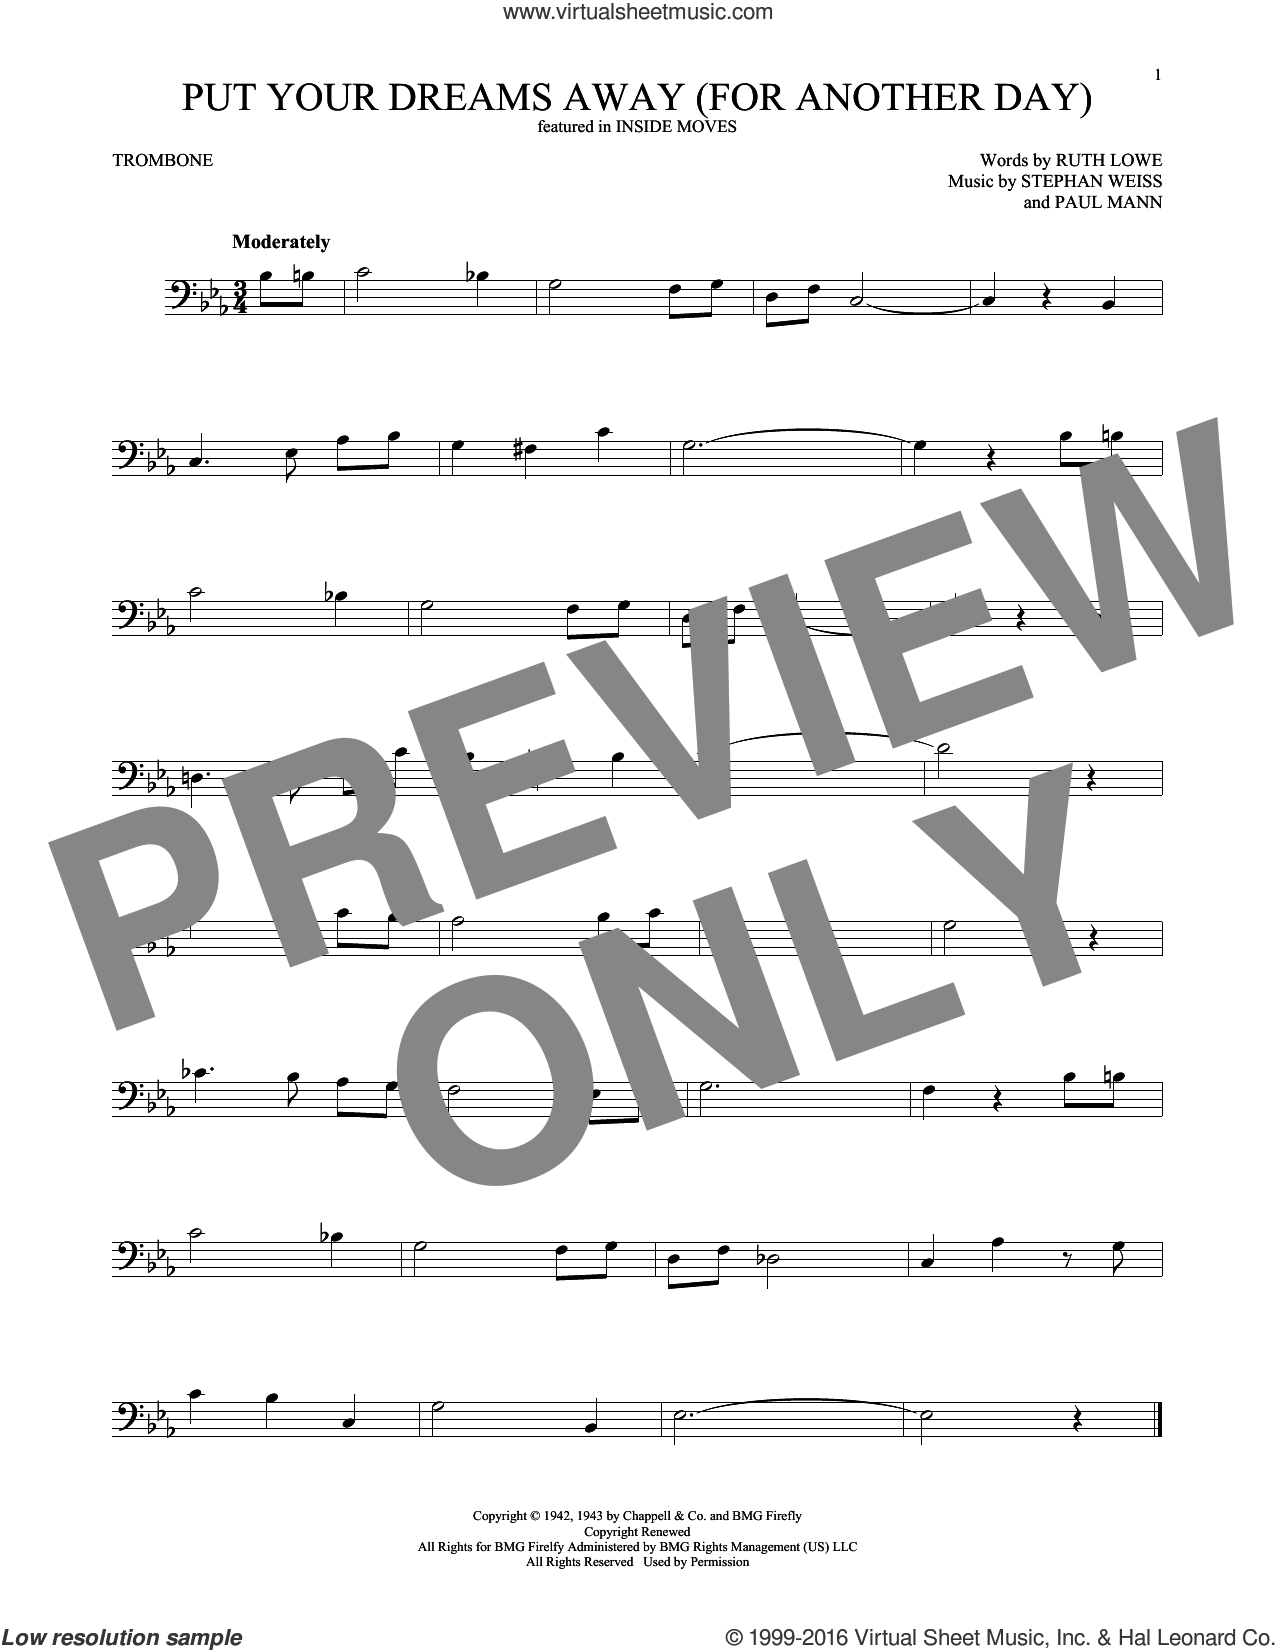 Put Your Dreams Away (For Another Day) sheet music for trombone solo by Frank Sinatra, Ruth Lowe and Stephen Weiss, intermediate. Score Image Preview.